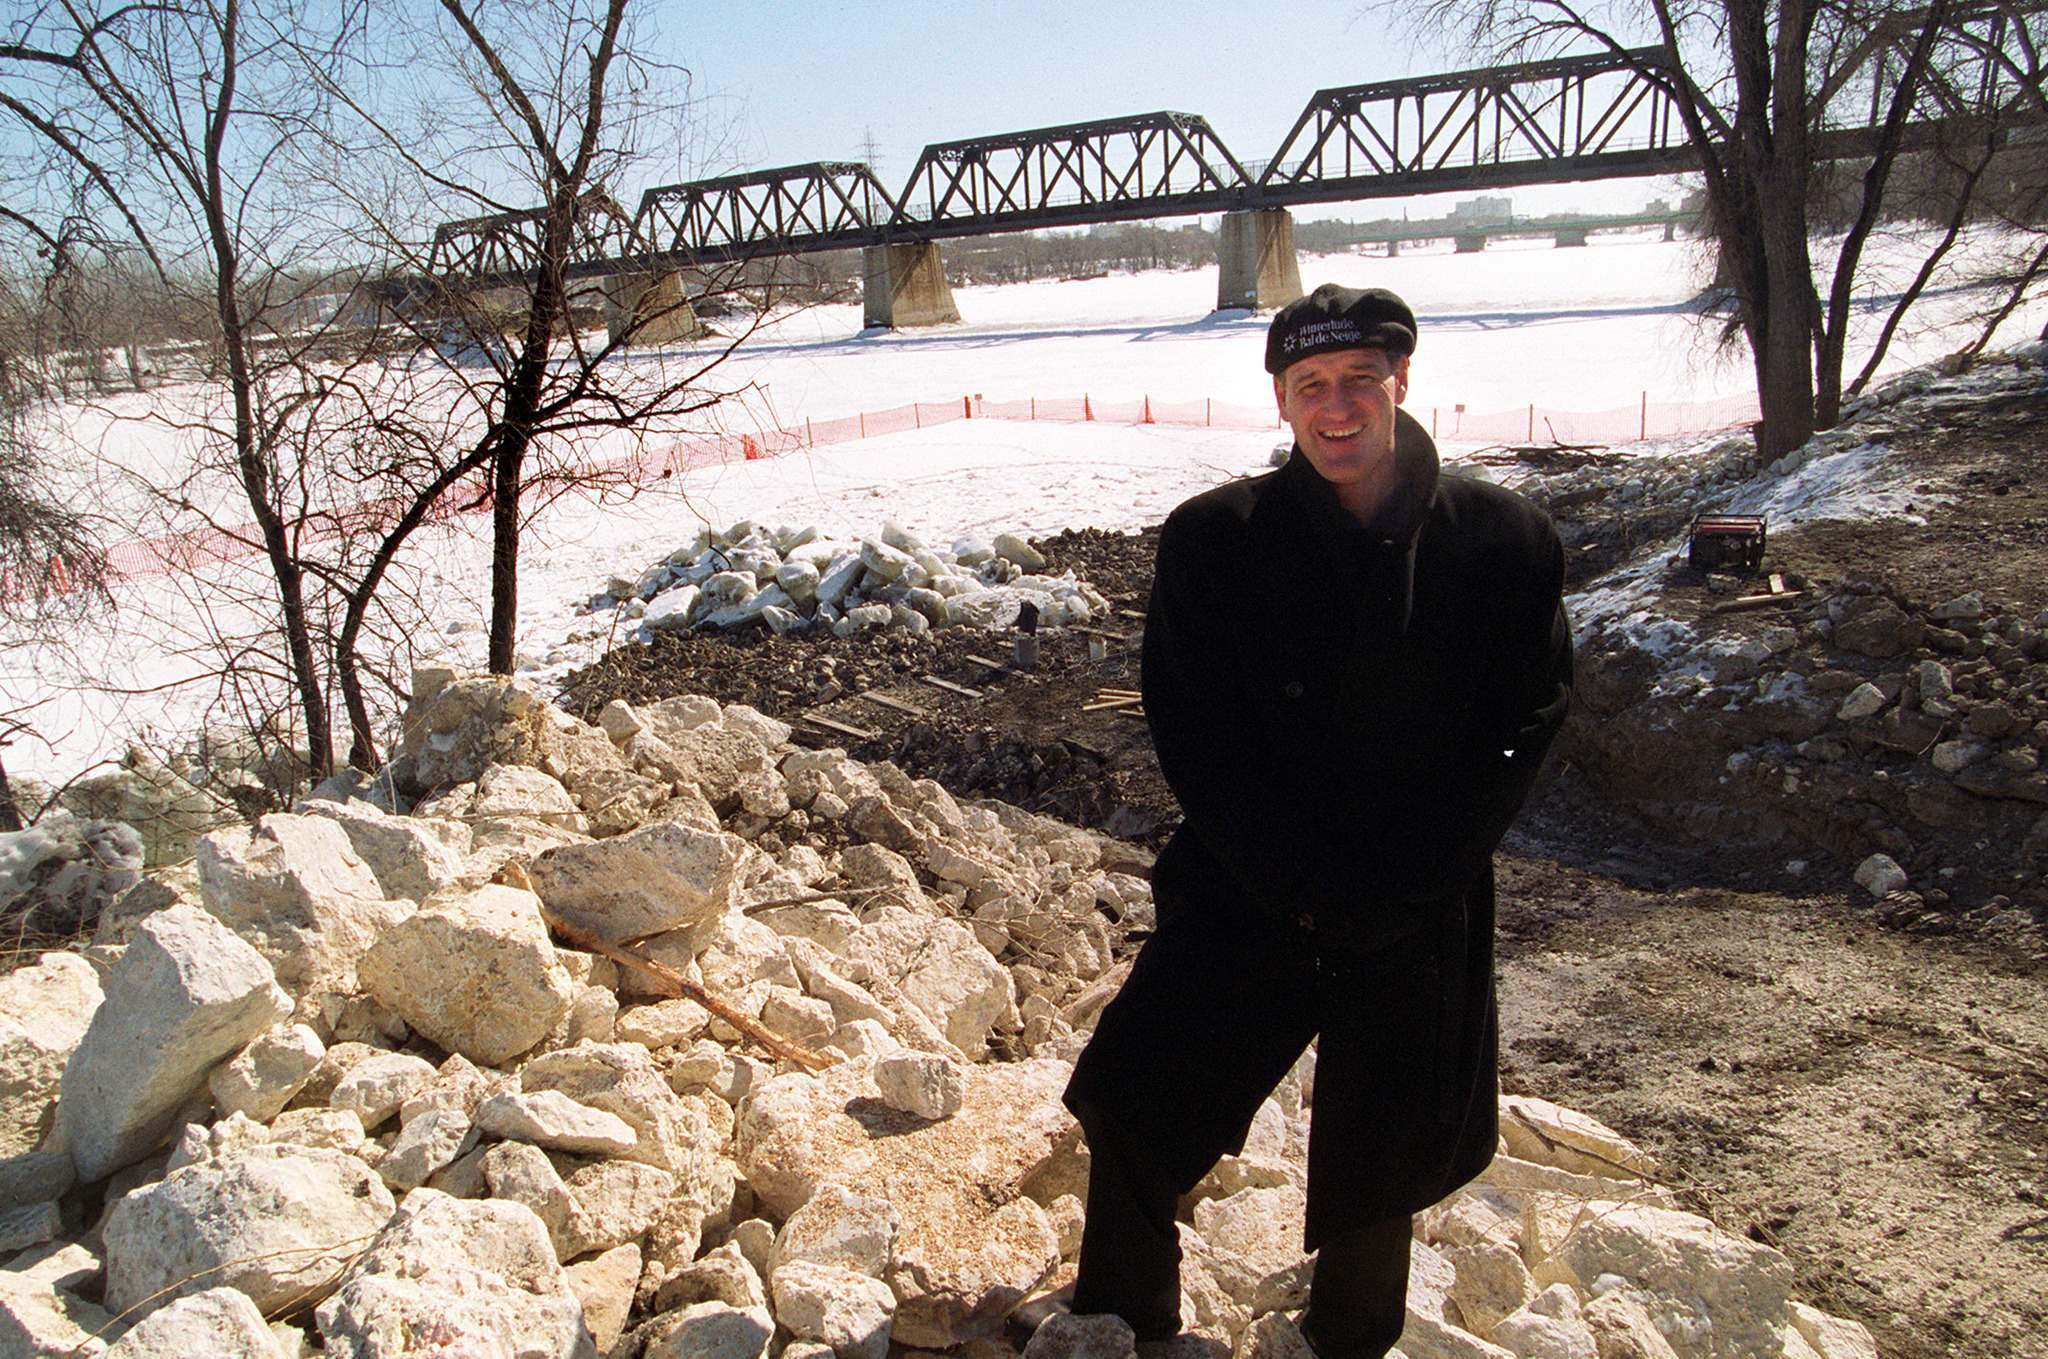 WAYNE GLOWACKI/WINNIPEG FREE PRESS files</p><p>In 2001, Paul Jordan stood at the site where the new Steve Juba Dock (along Steve Juba Park) would be built.</p>